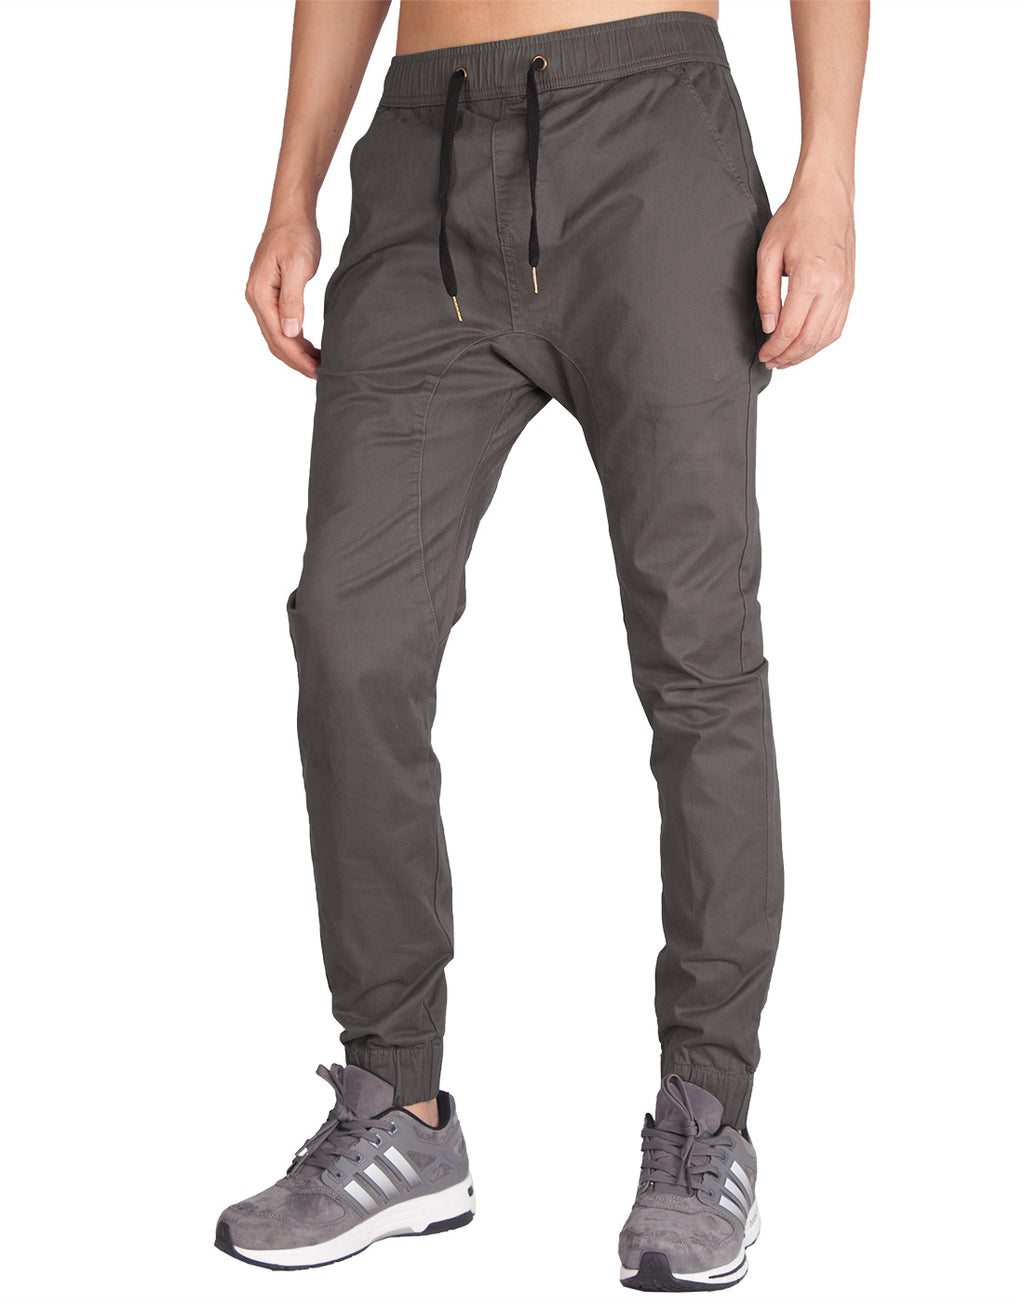 Man Drop Crotch Jogger Pants Dark Grey - italymorn